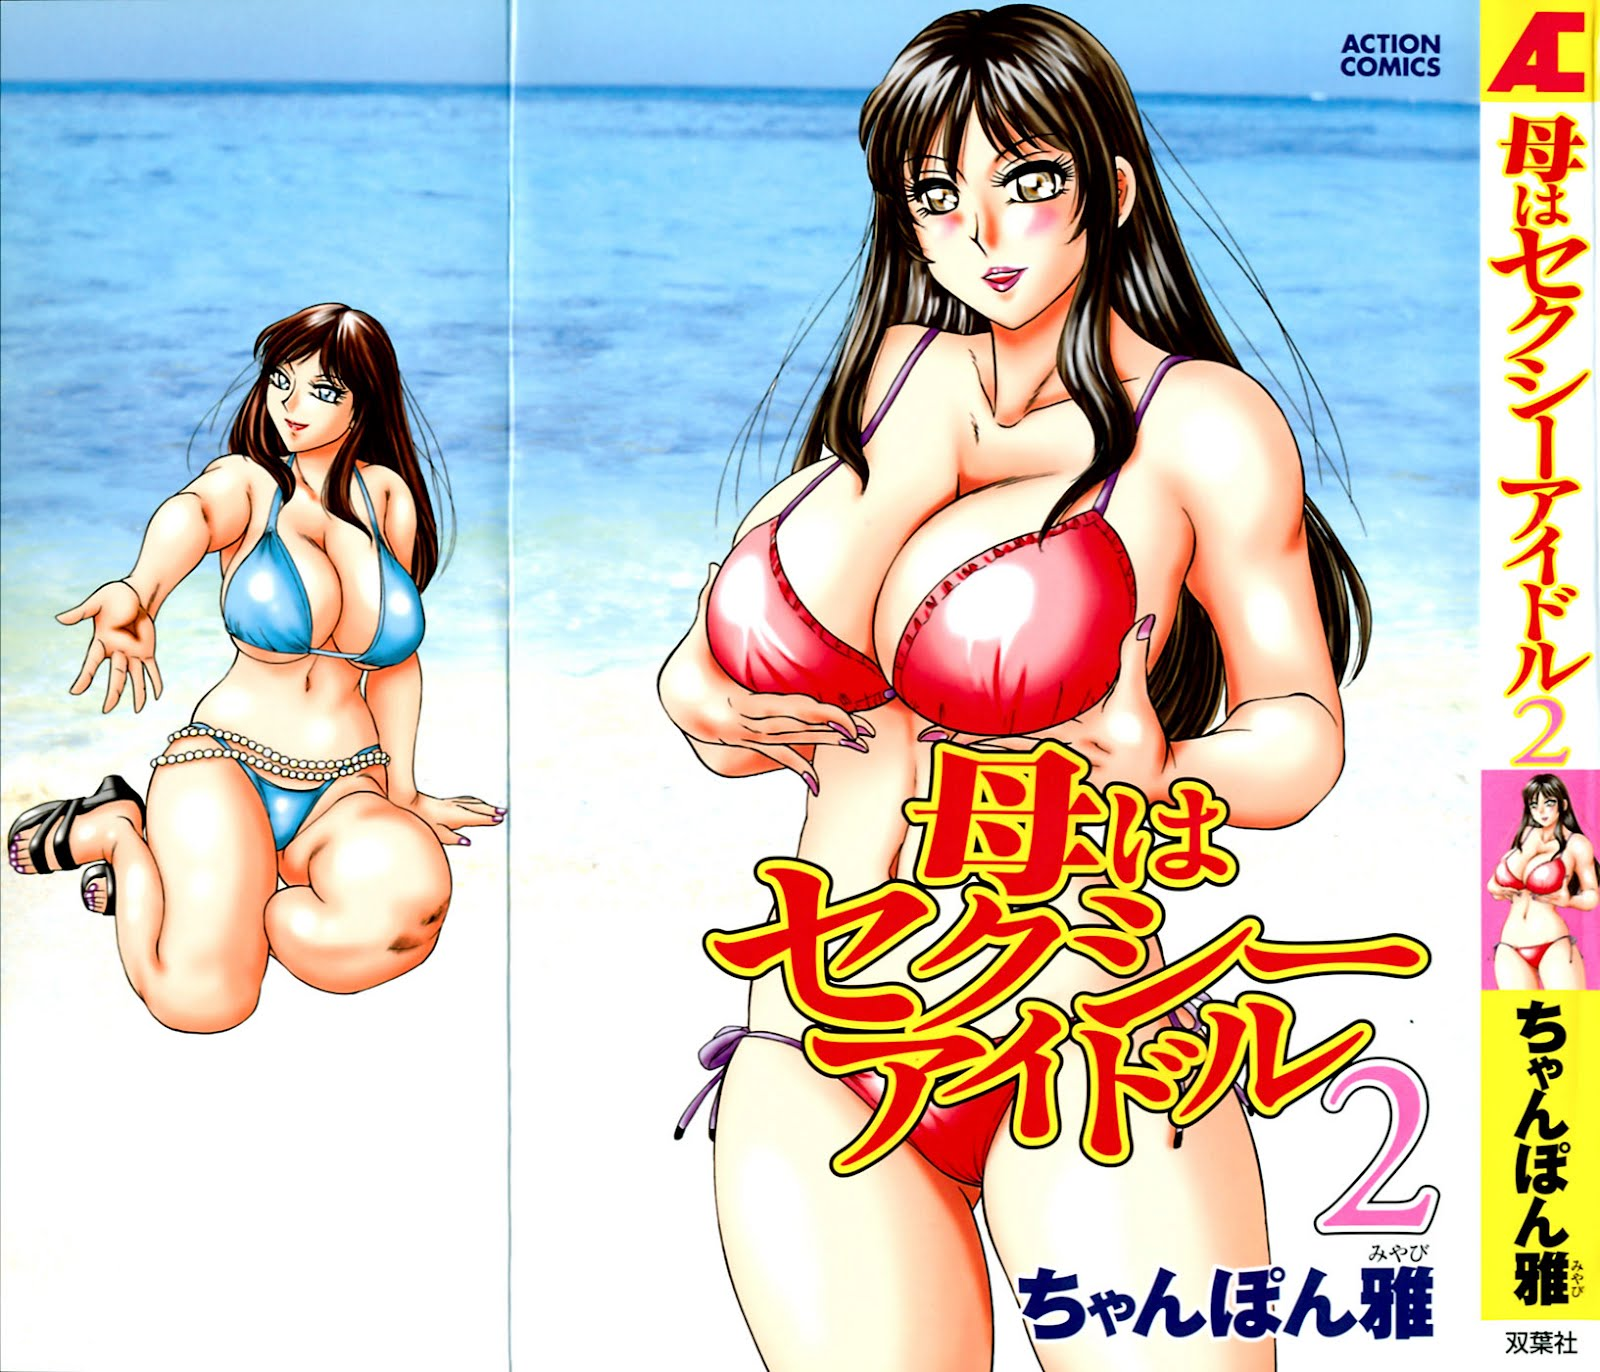 Jules Adult Comix / Hentai Comics, Pics & Hentai Games: Mom the Sexy Idol 2